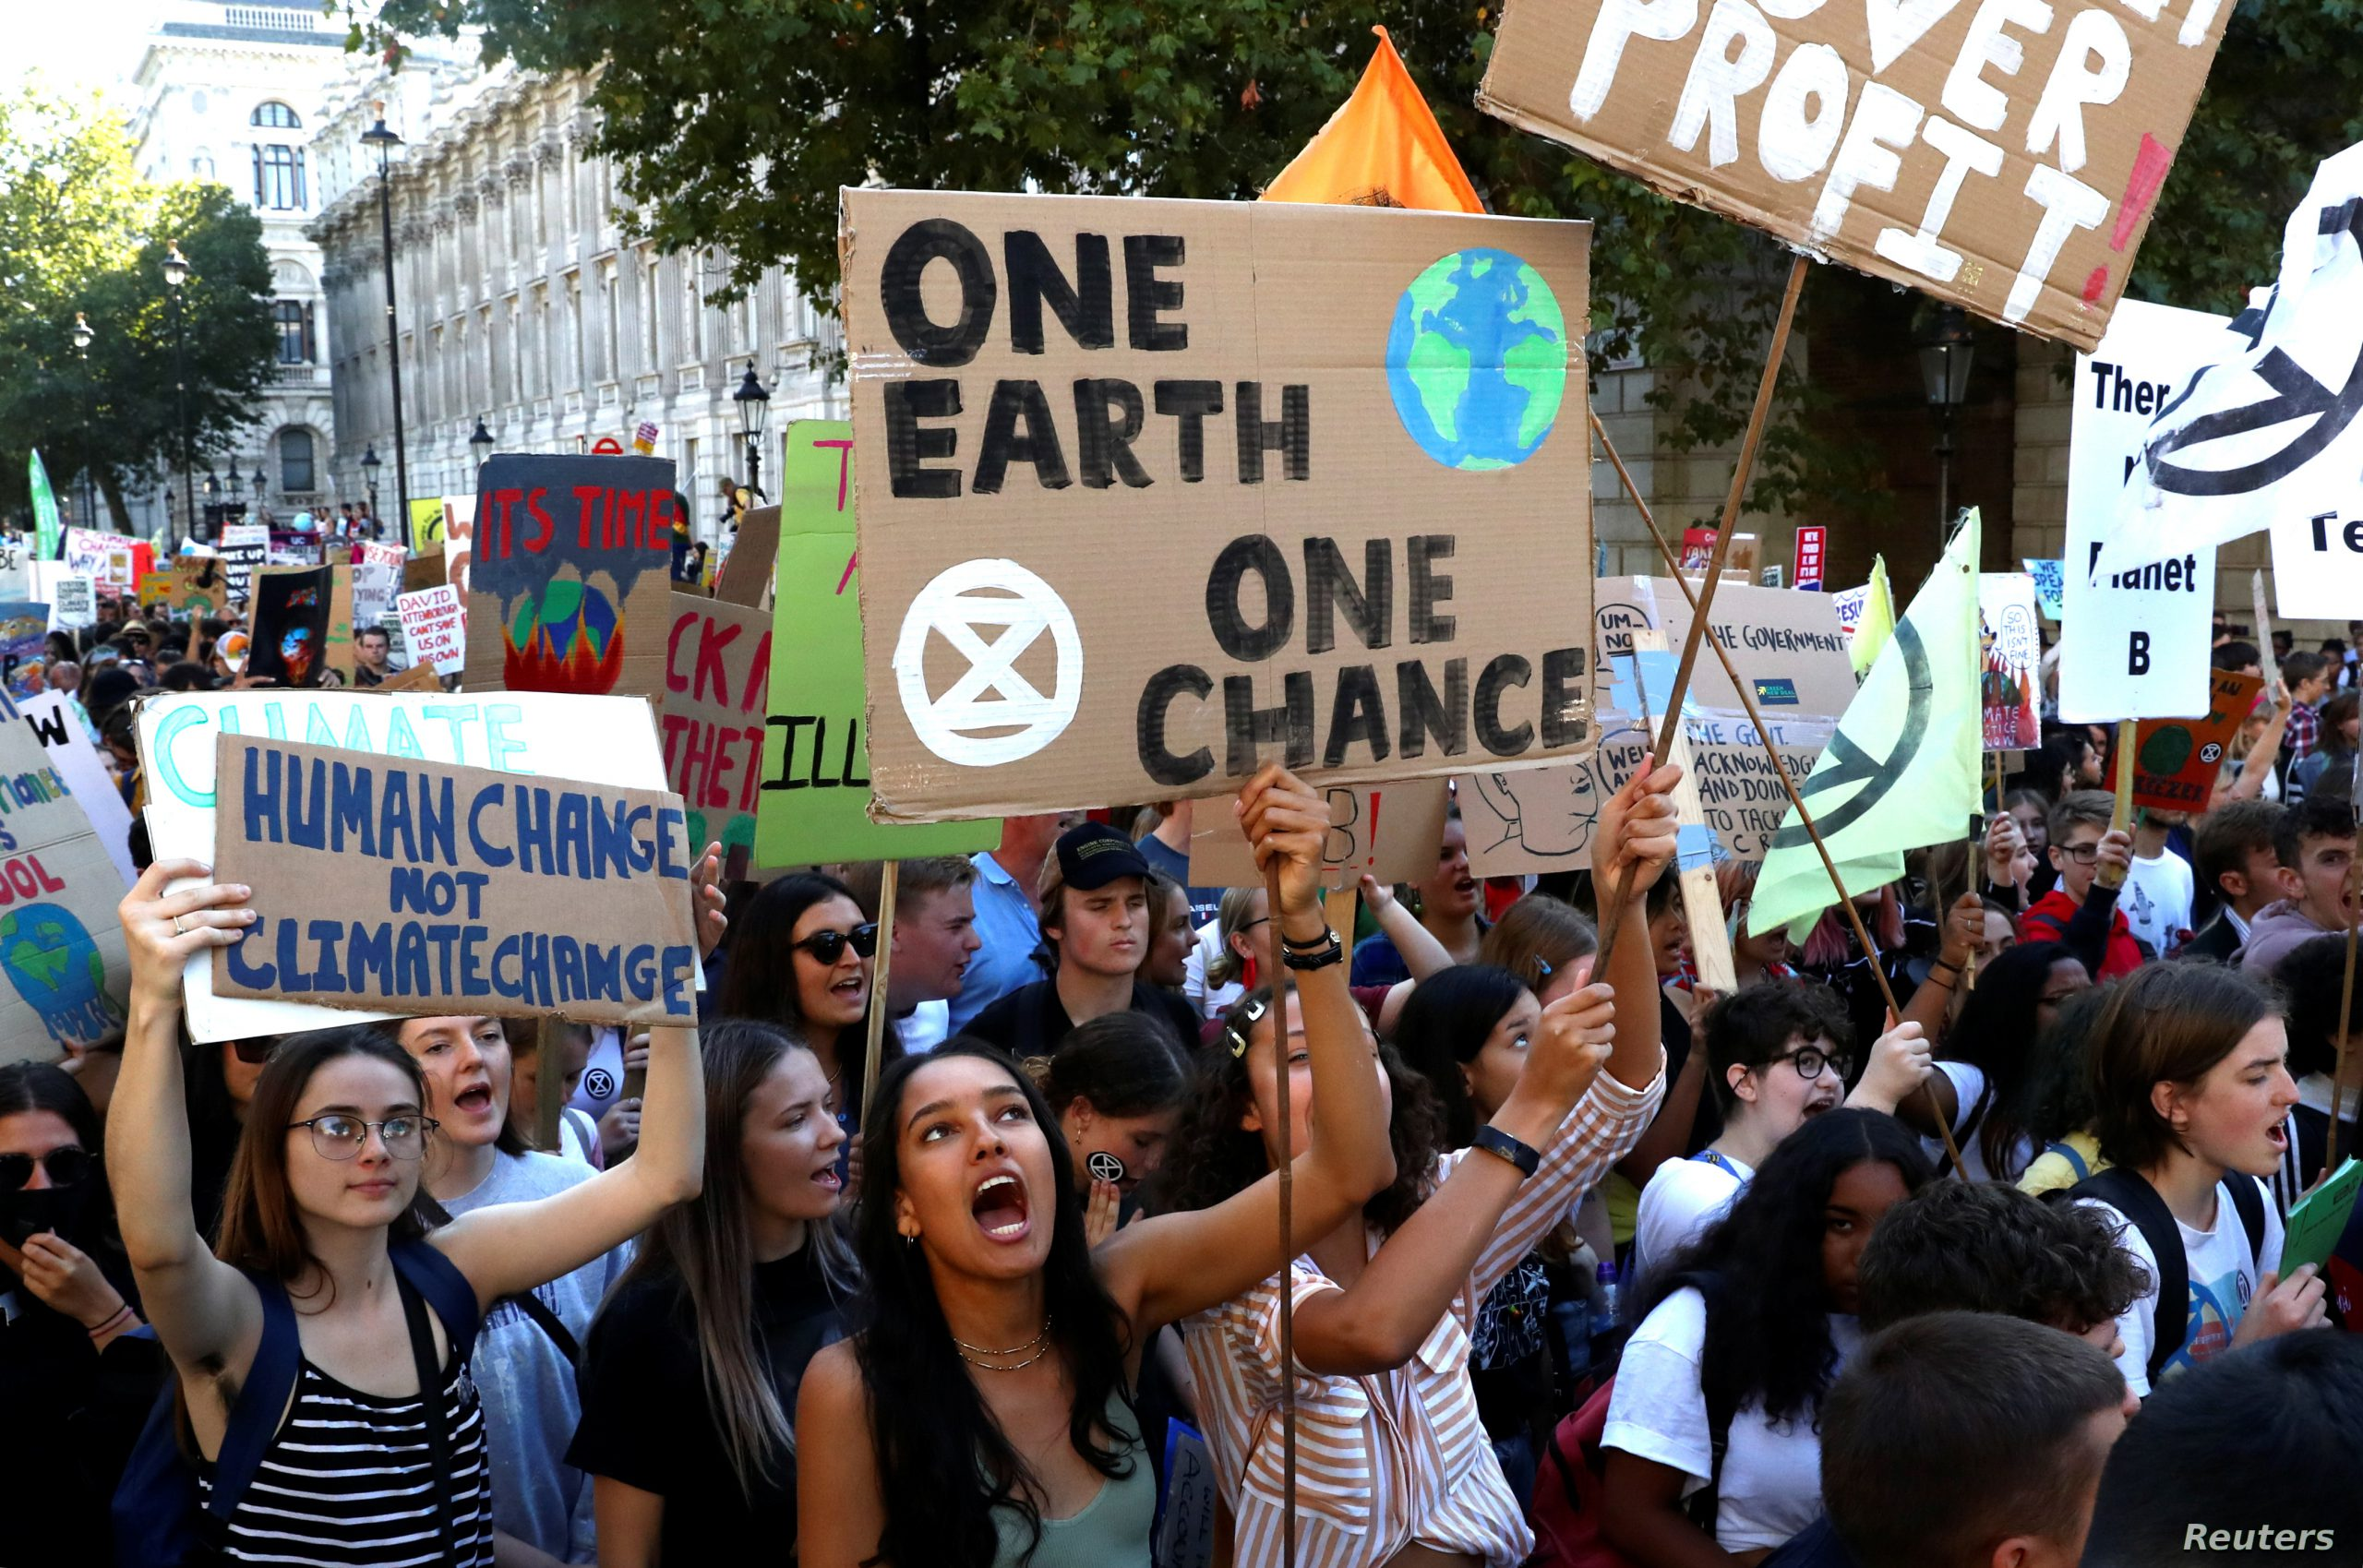 The Climate Change Action Series